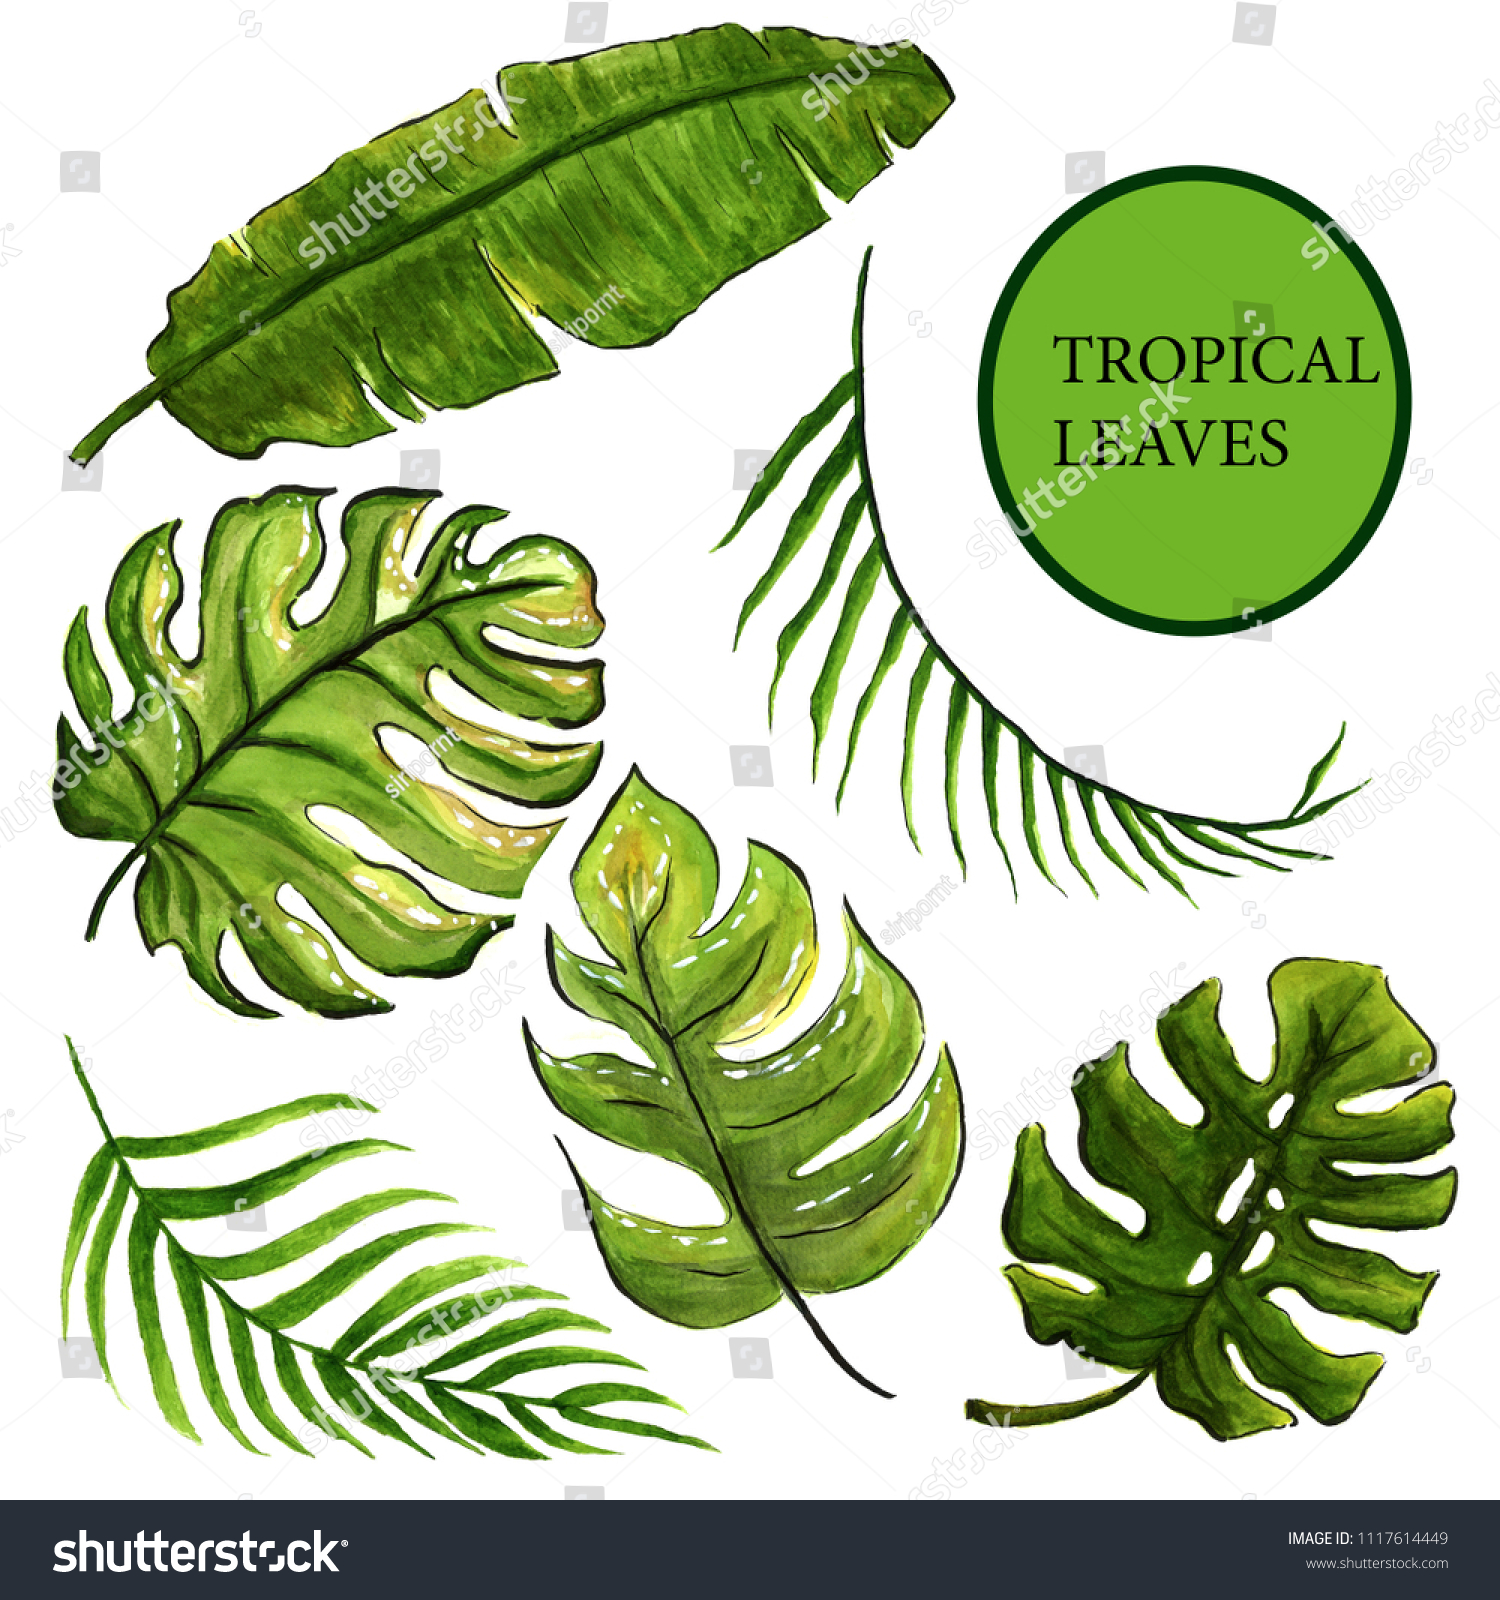 Hand Draw Tropical Leaves Different Types Stock Illustration 1117614449 Learn about and revise tropical rainforests, their characteristics and the threats they face, with gcse bitesize geography (aqa). https www shutterstock com image illustration hand draw tropical leaves different types 1117614449